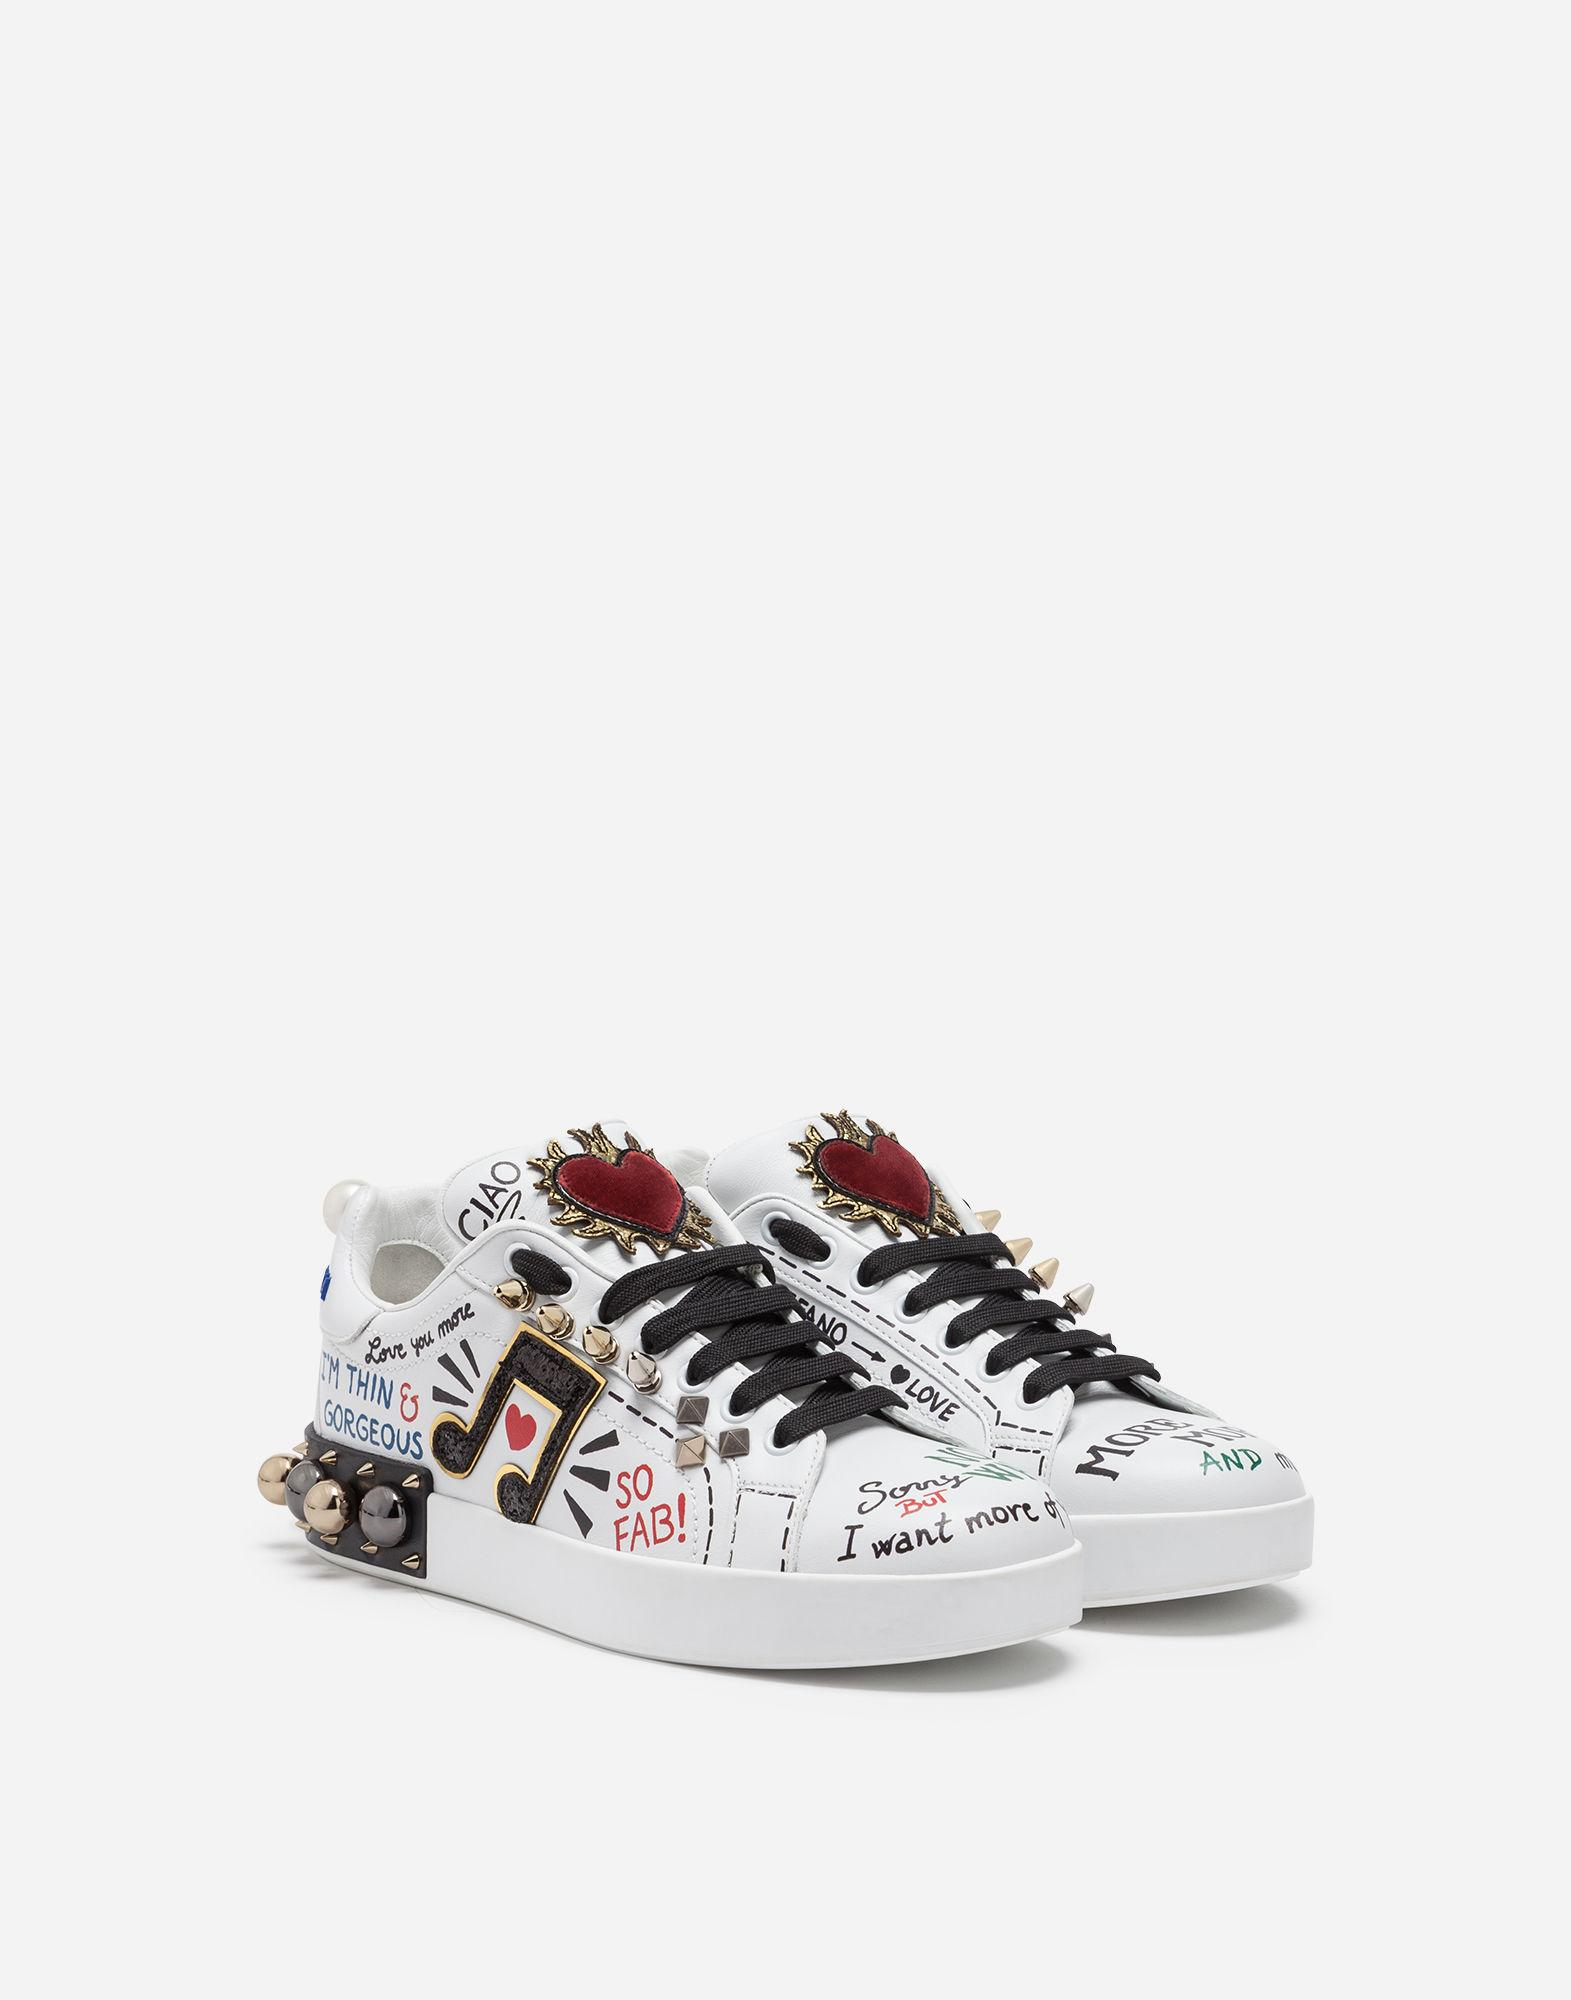 8e1e784b86ff Dolce   Gabbana. Women s White Sneakers In Printed Leather With Applications